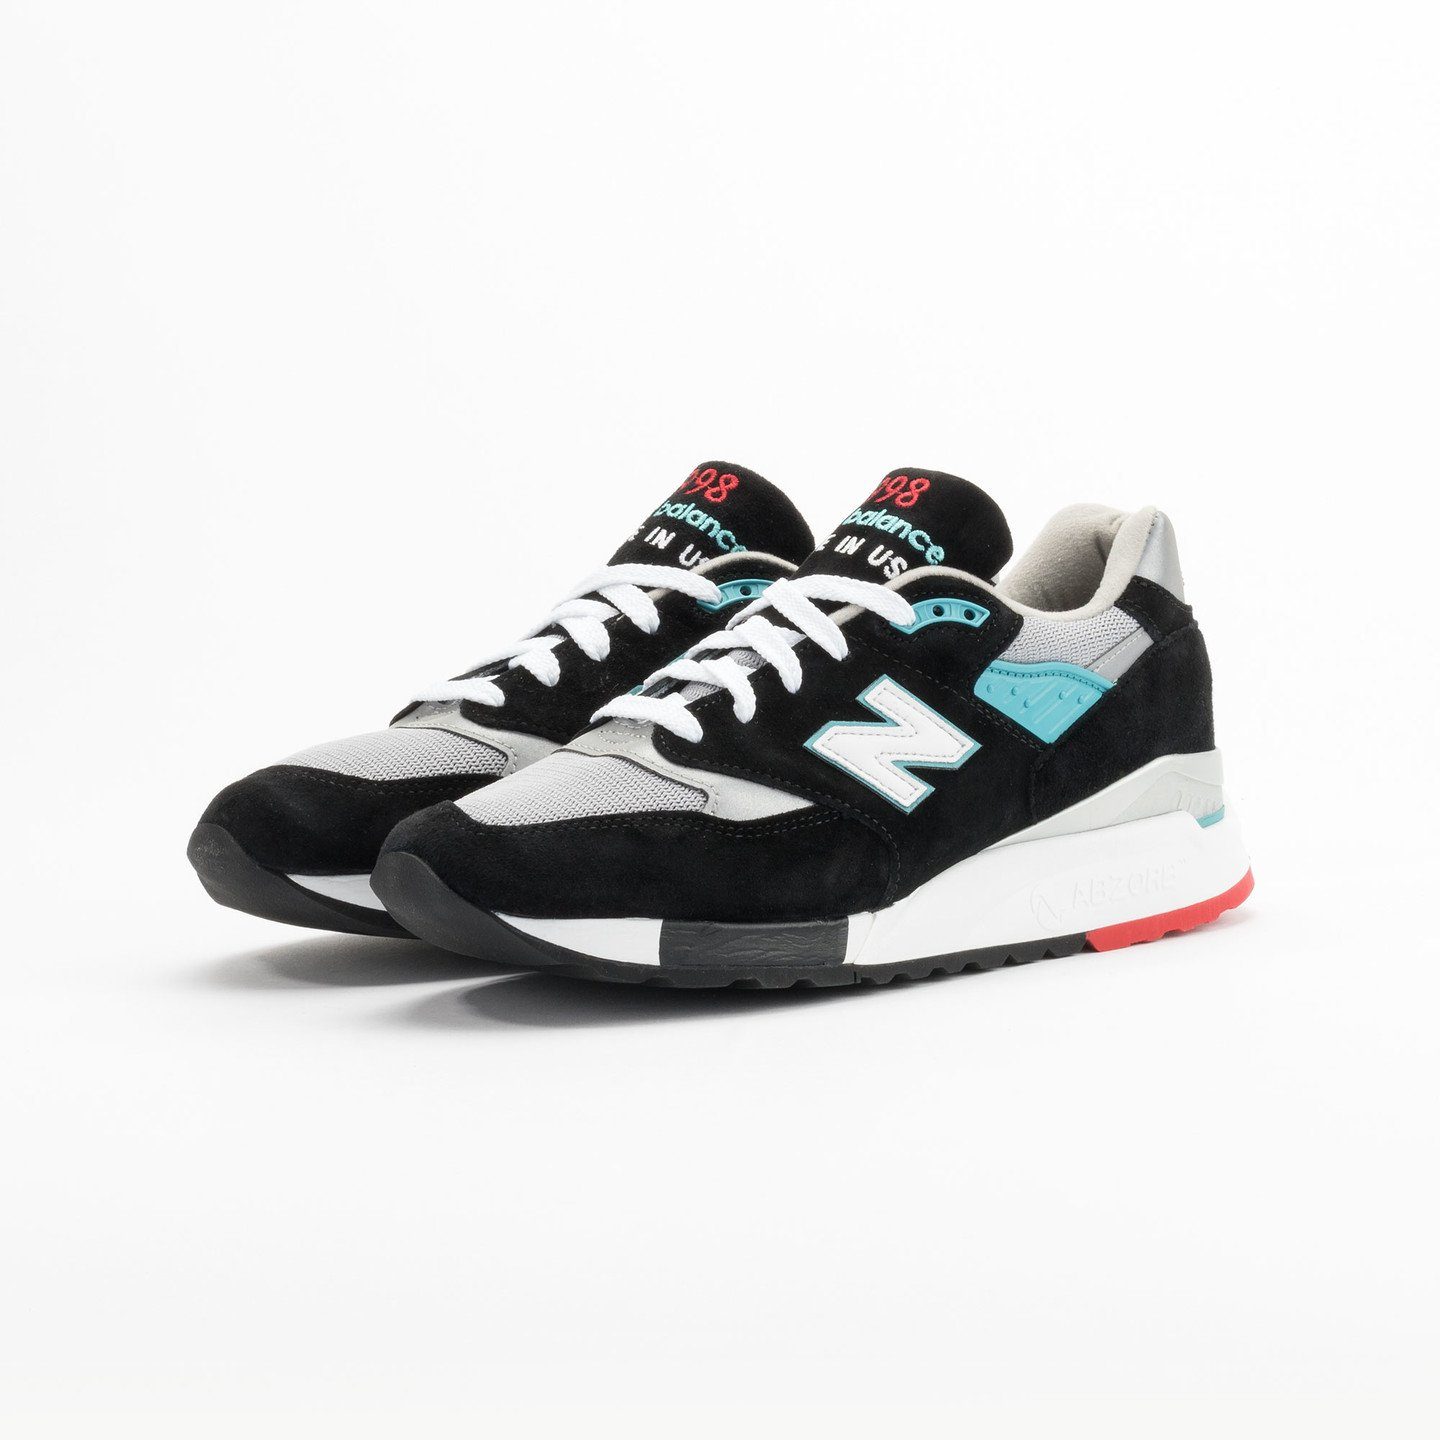 New Balance M998 CBB - Made in USA Black / Grey / Turquoise M998CBB-44.5